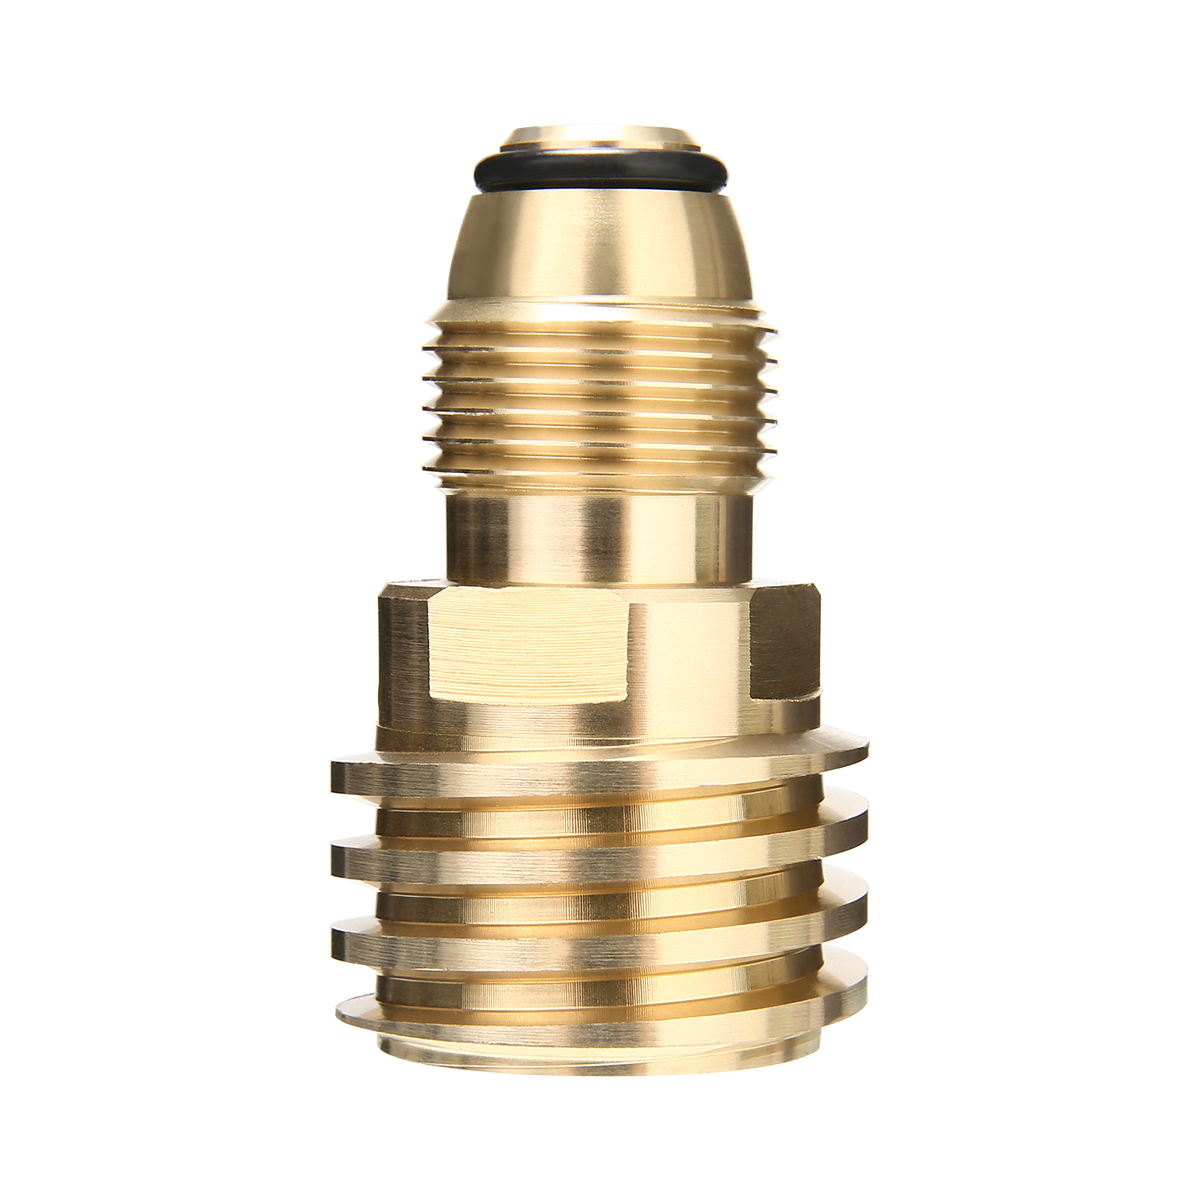 Type 1 Converts Propane LP TANK POL Service Valve to QCC Outlet Brass Adapter